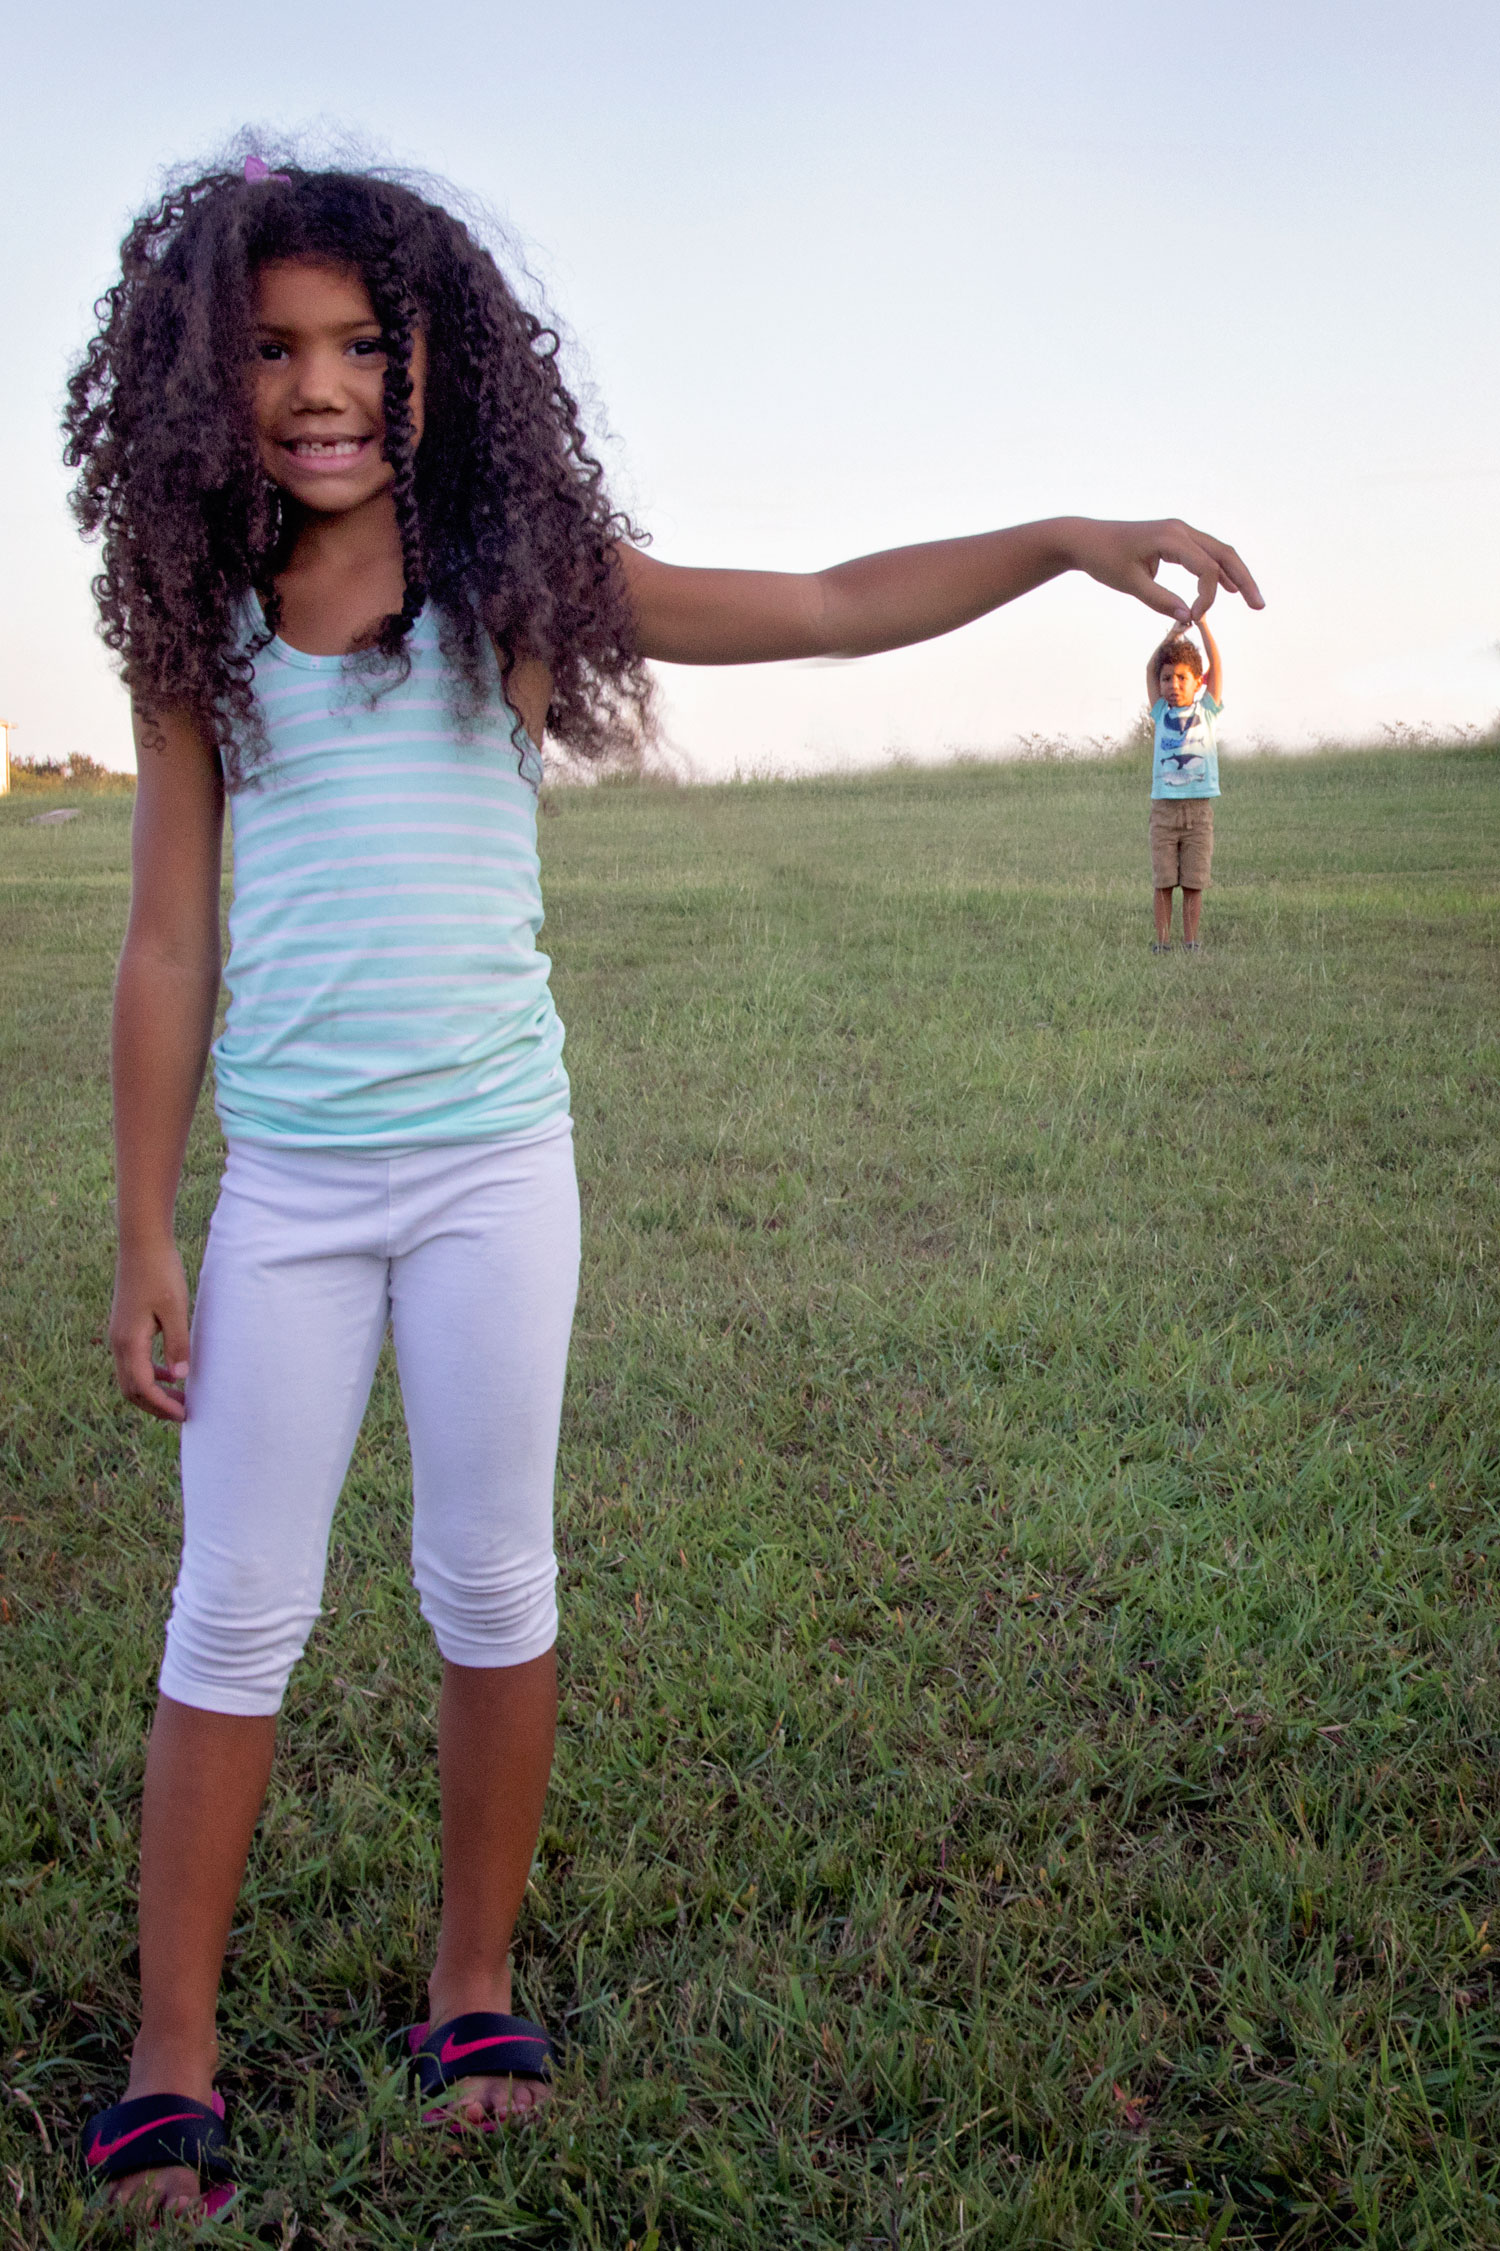 Tips for taking forced perspective photos